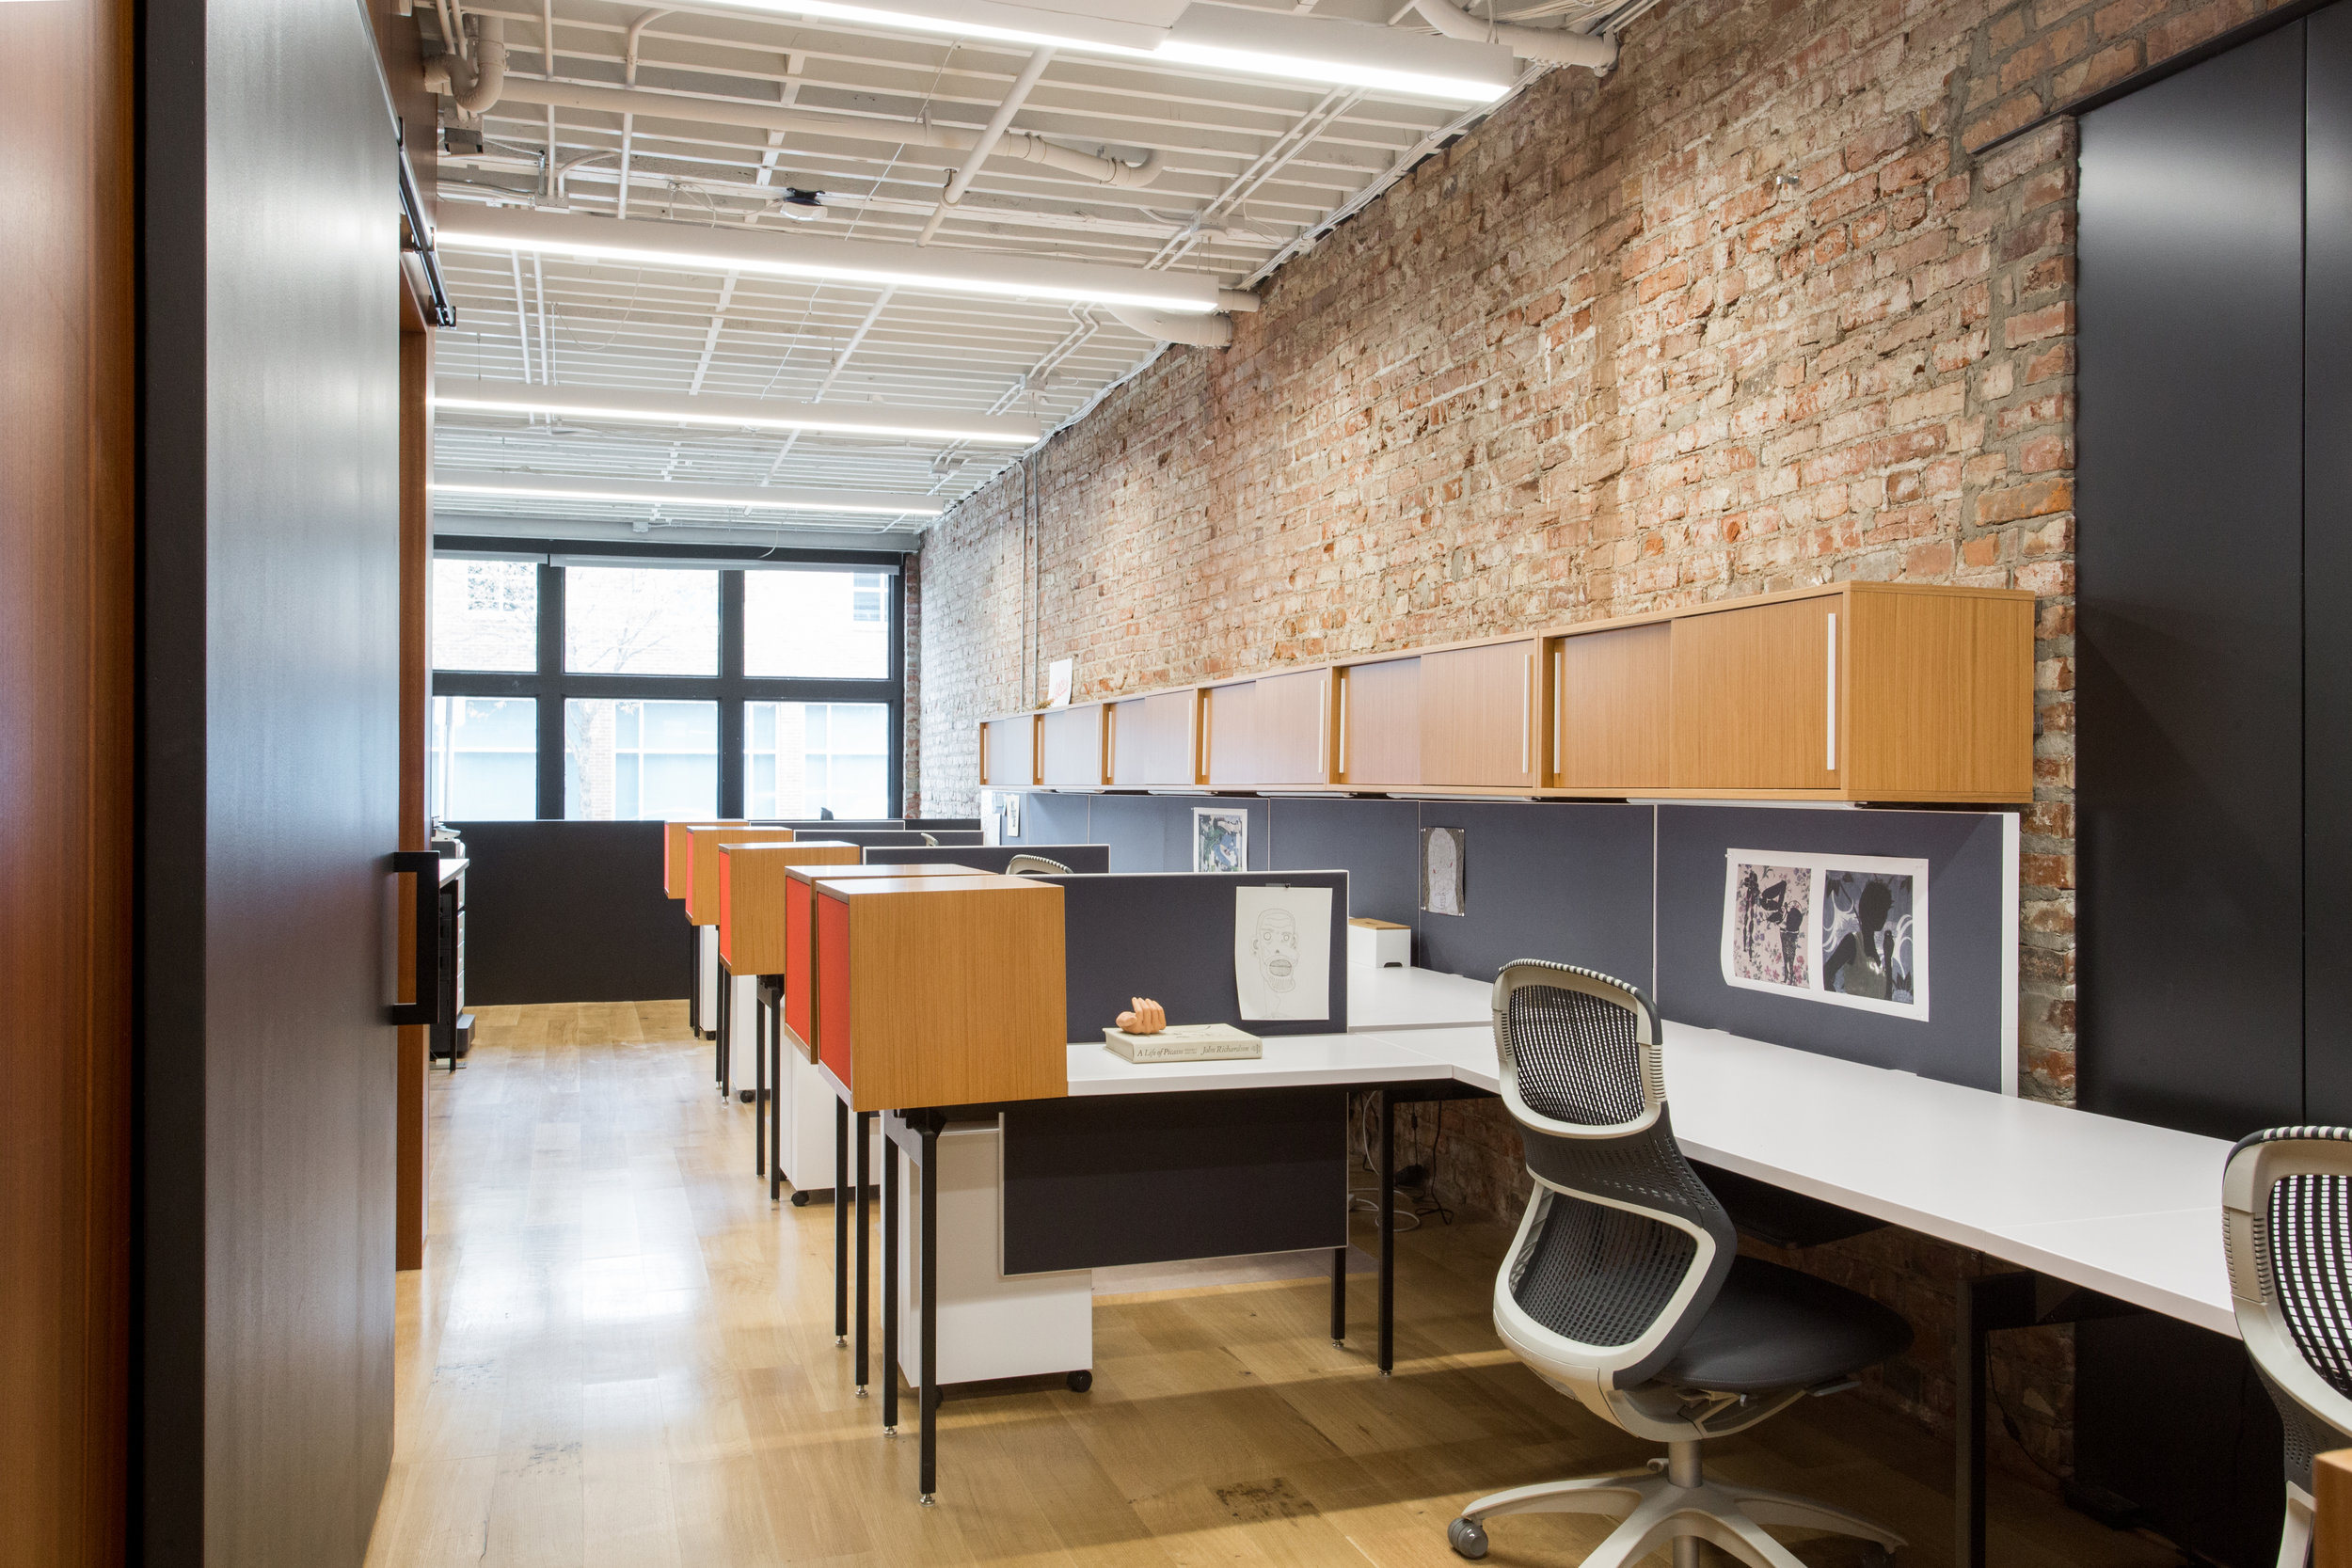 The Union for Contemporary Art, Offices |  Omaha, NE   View Gallery »